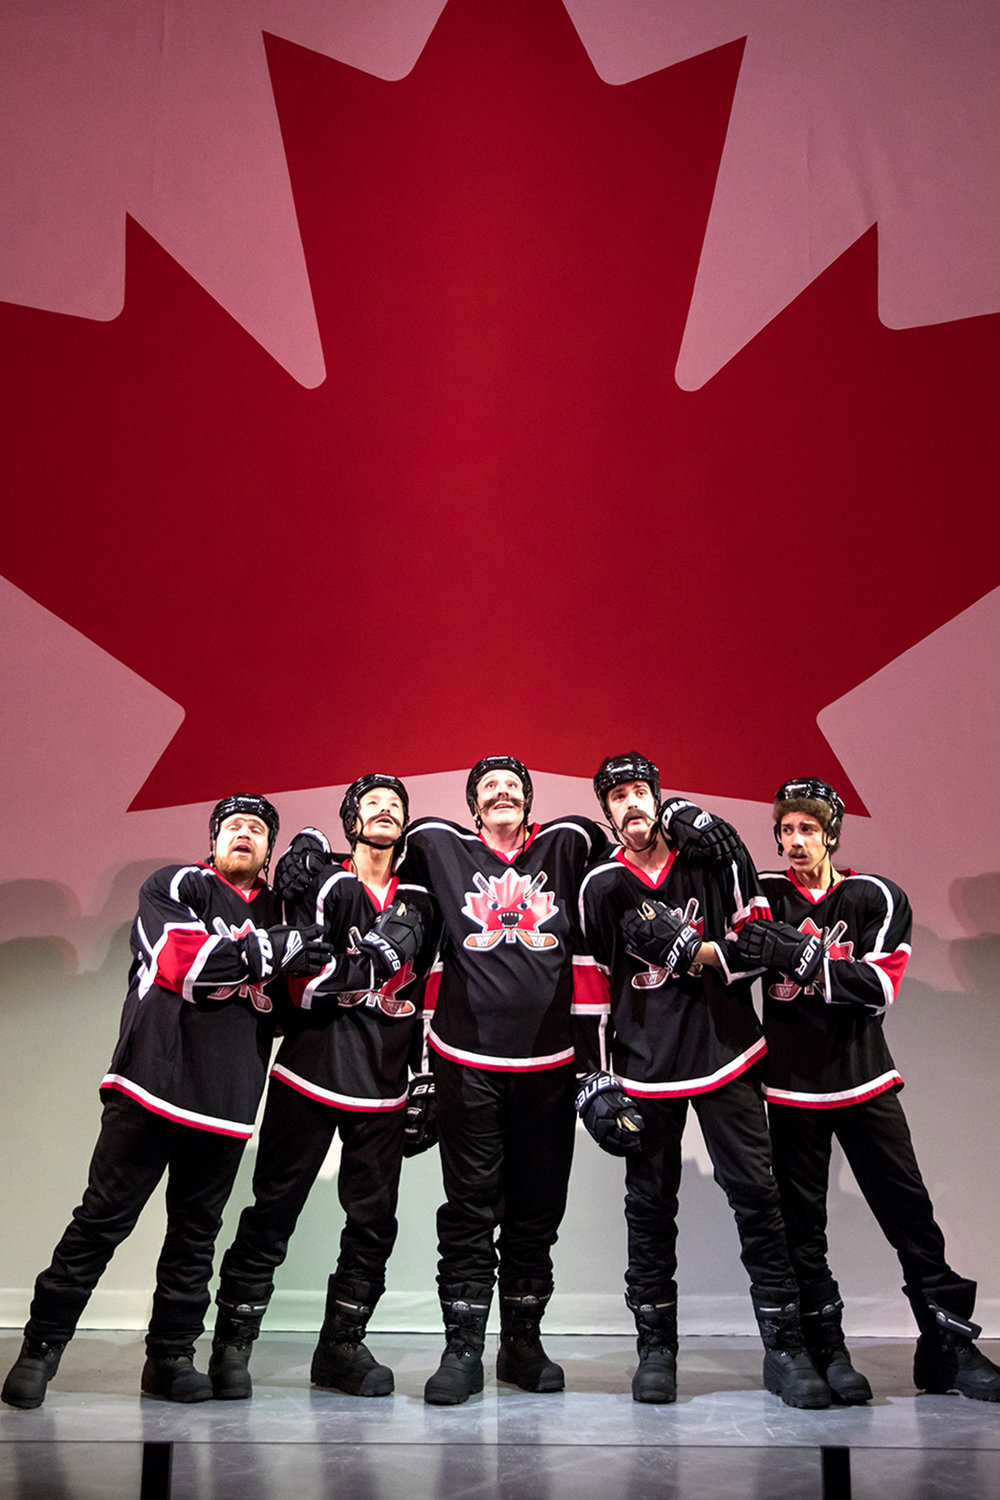 Canadian 'youth' hockey players photo by Dan Norman.jpg